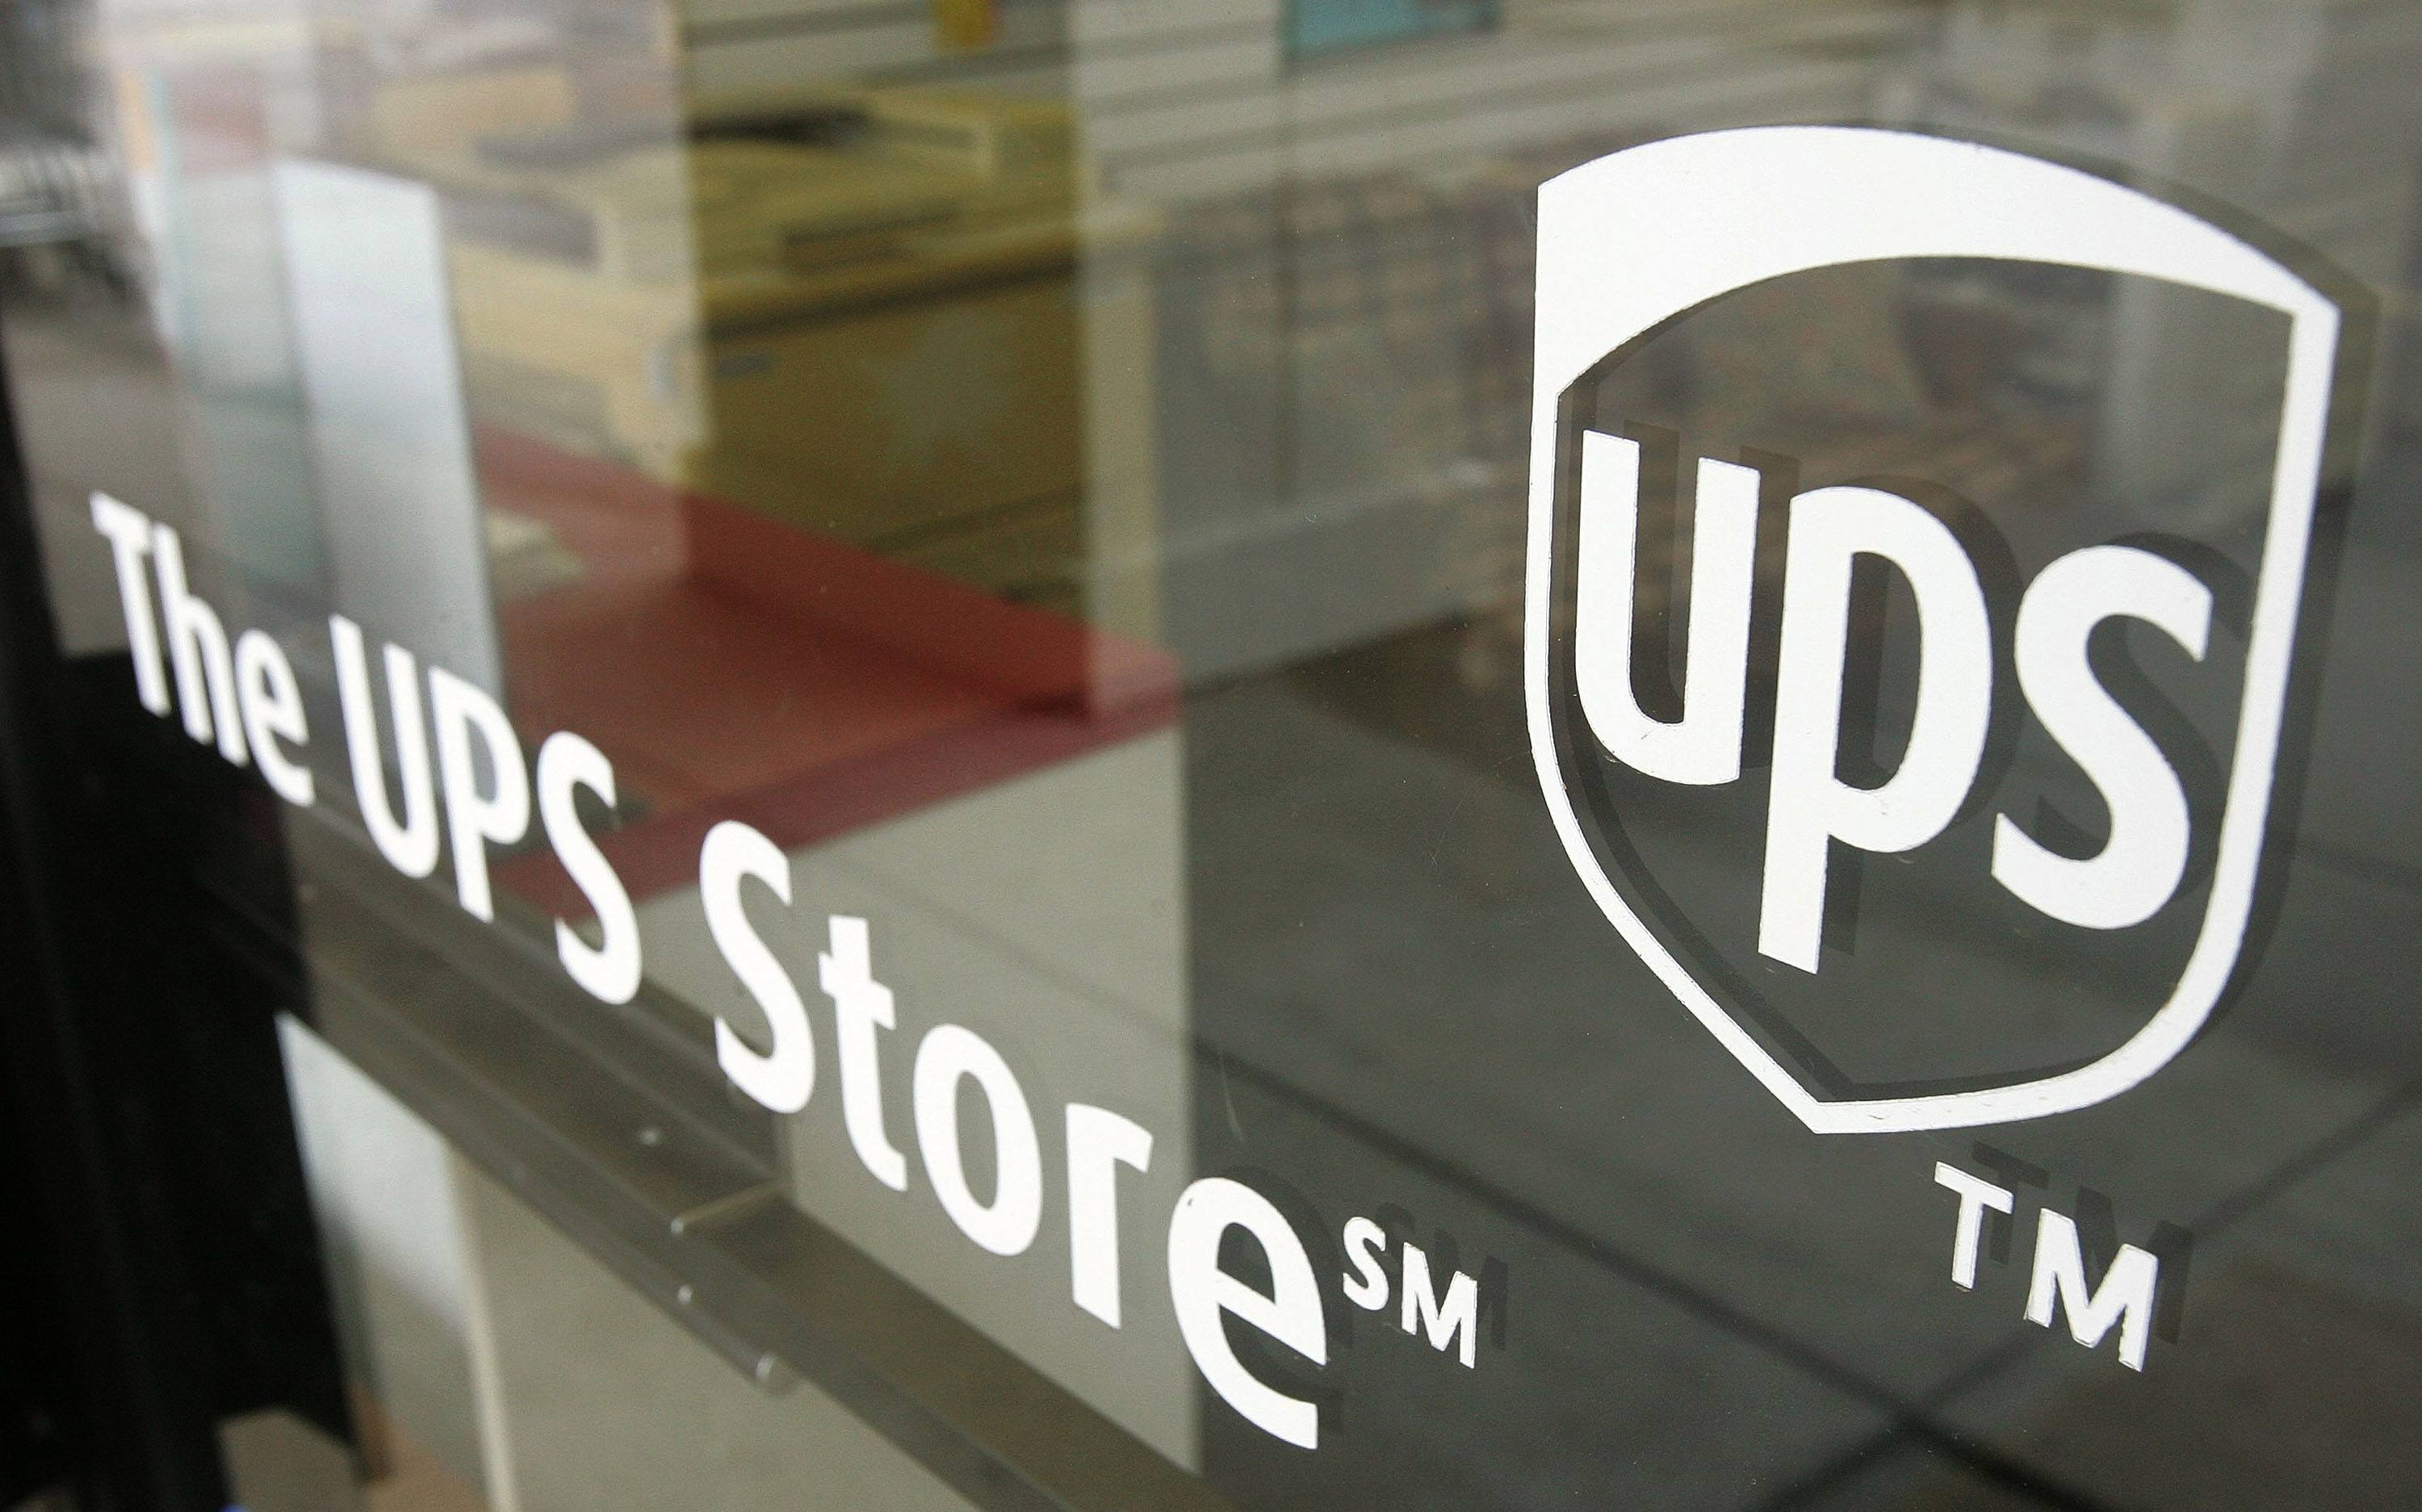 A UPS Store sign is seen on a door